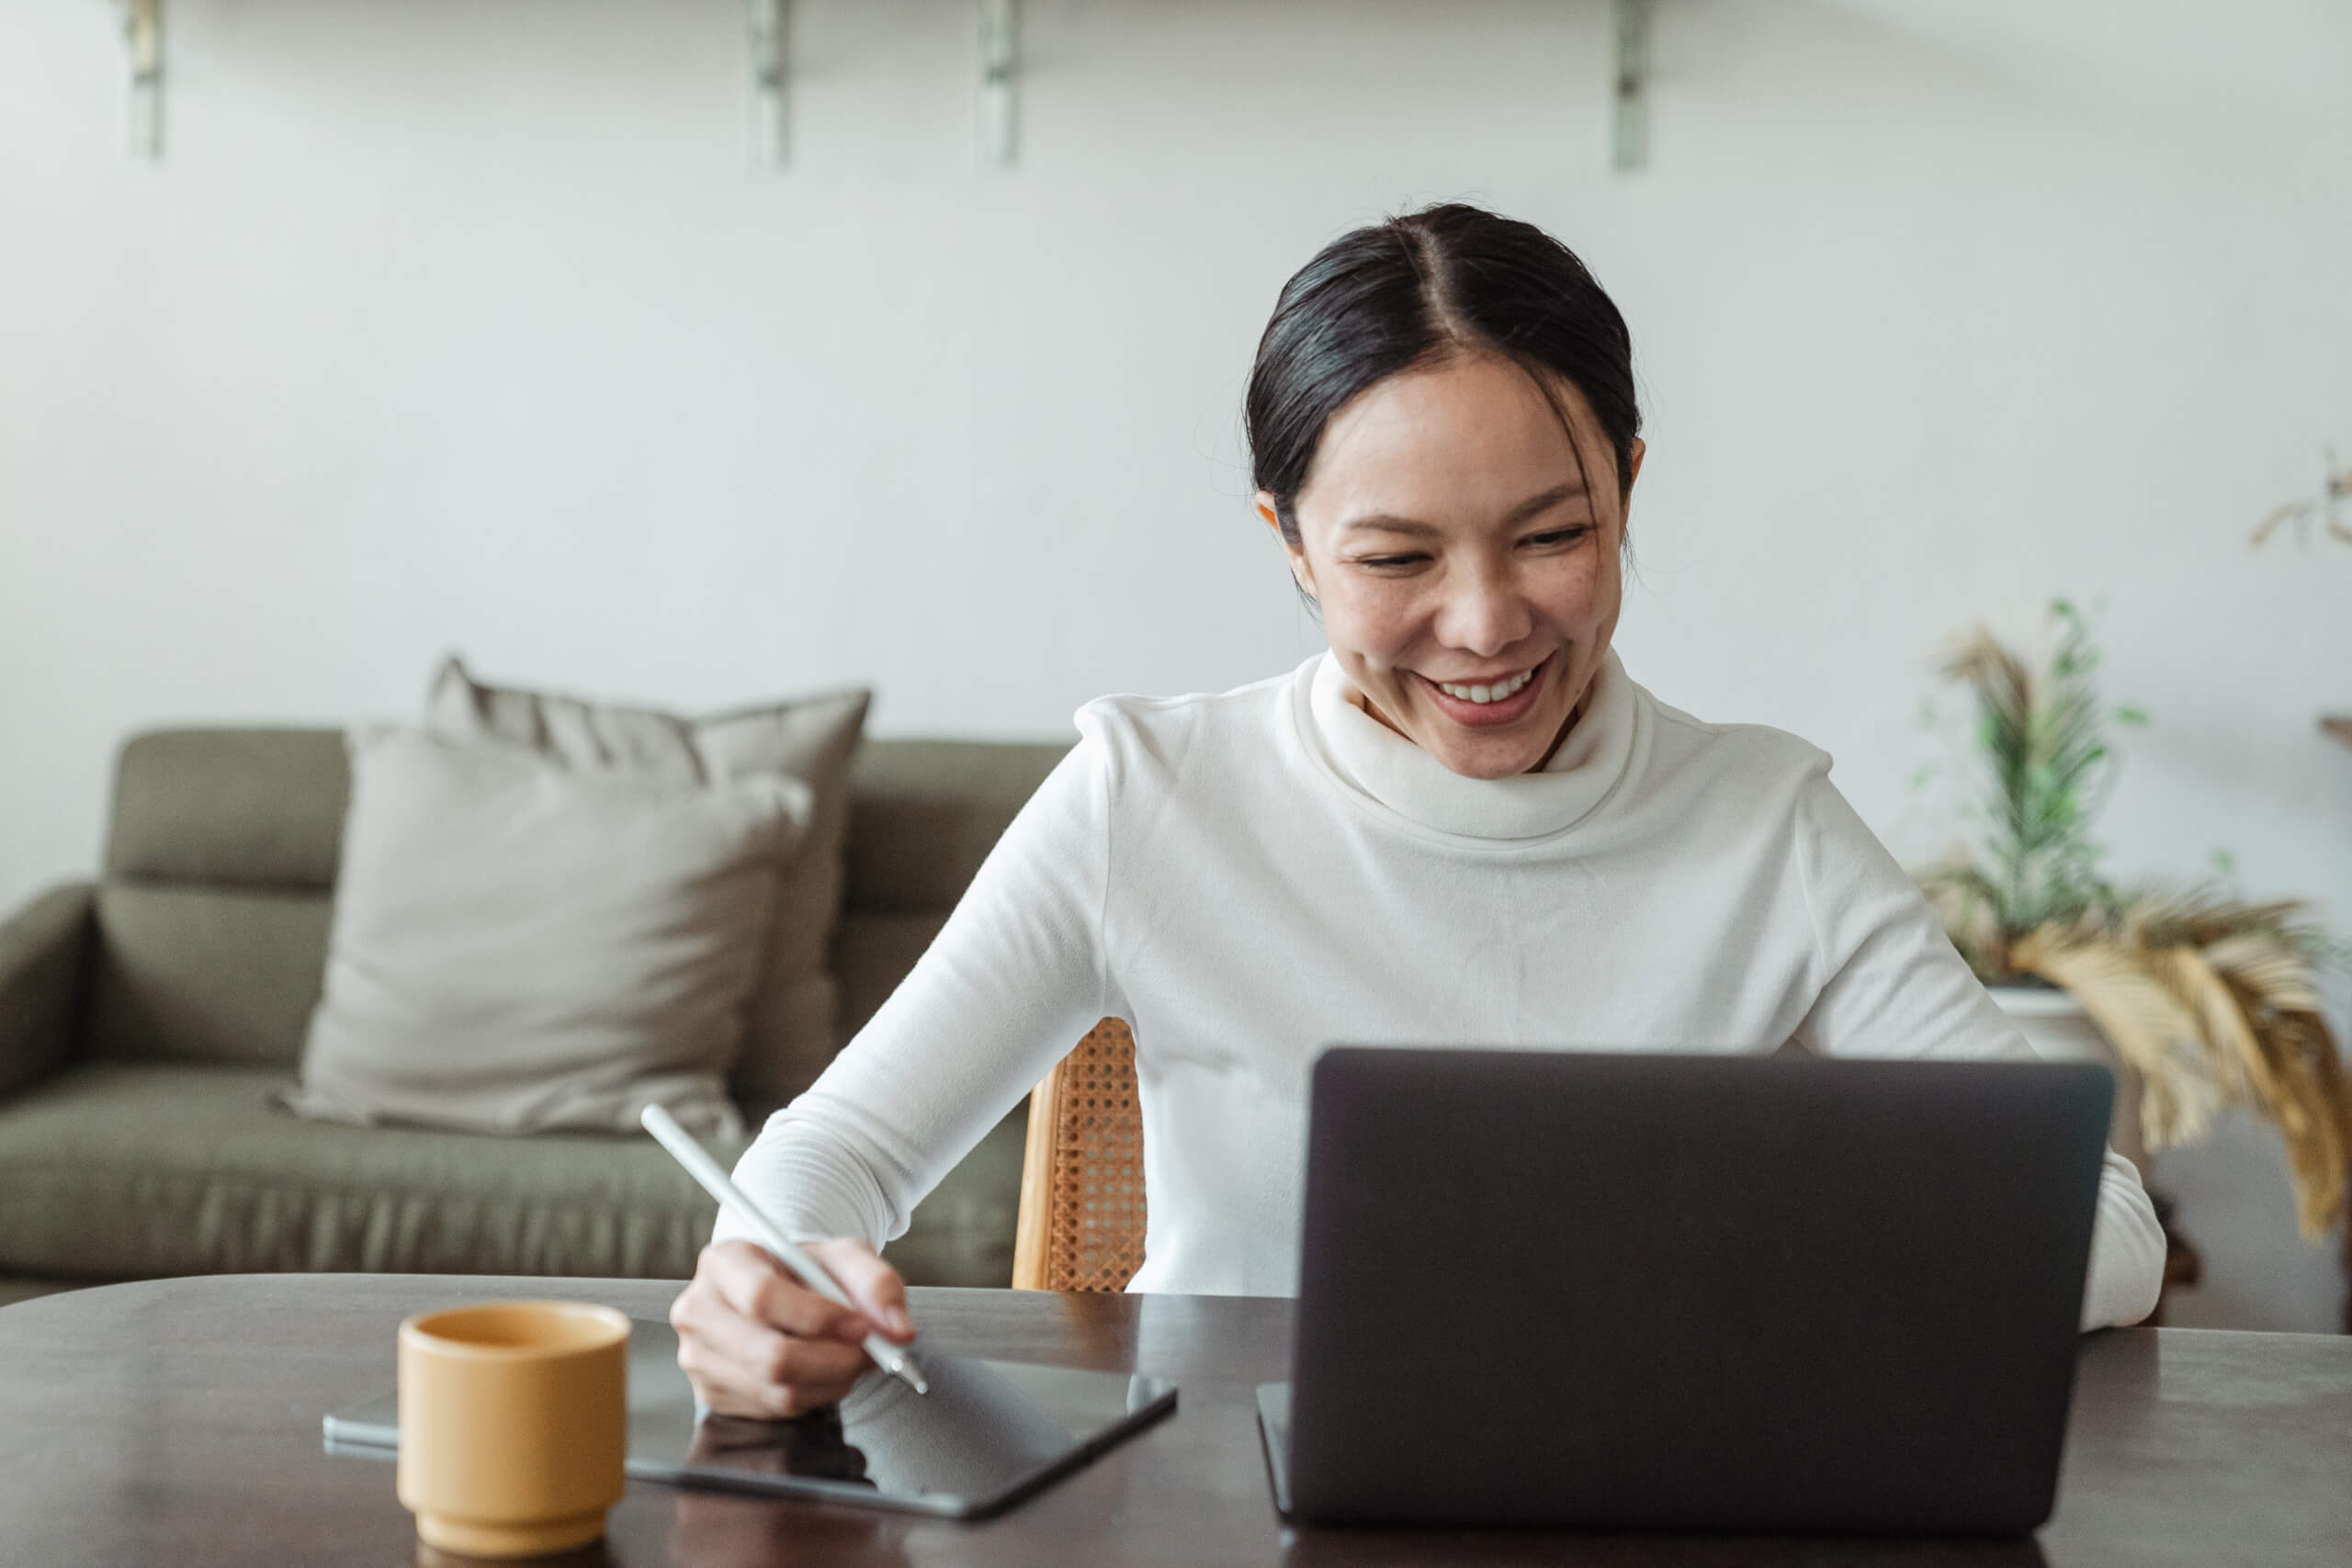 Happy woman working at home on laptop